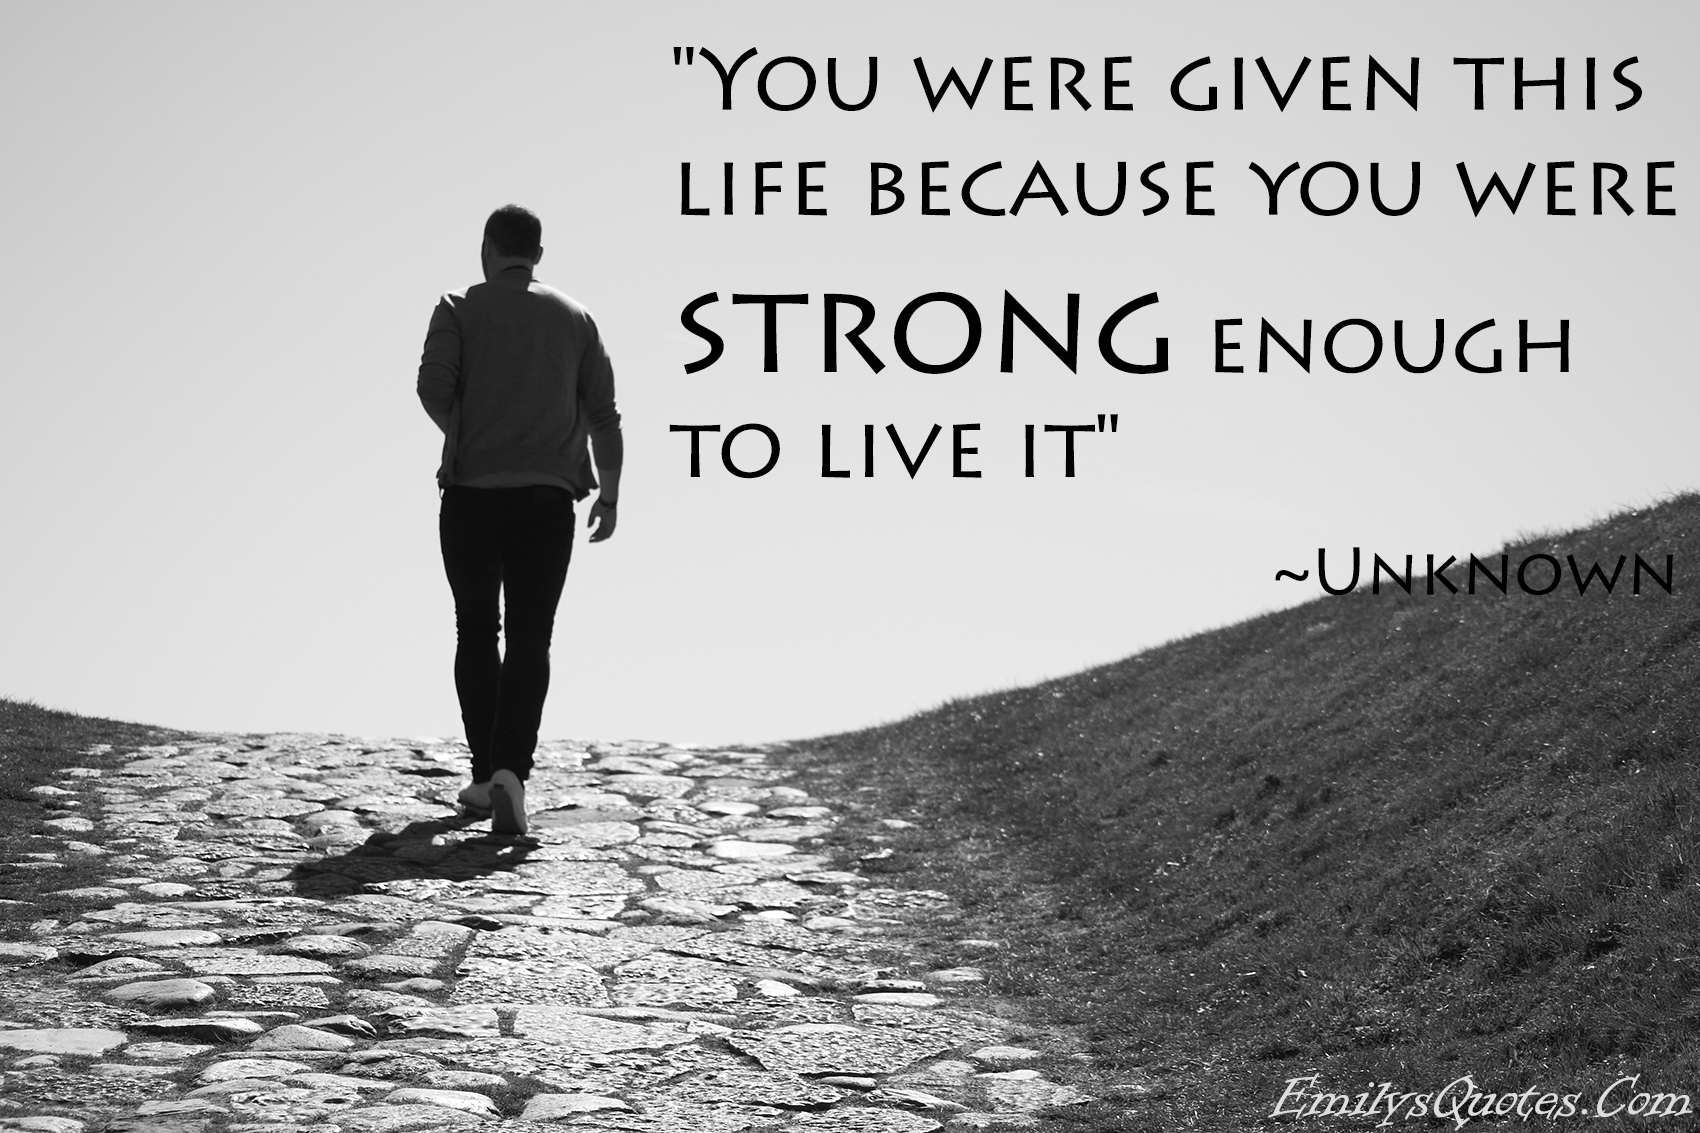 Quotes To Be Strong In Life Entrancing You Were Given This Life Because You Were Strong Enough To Live It